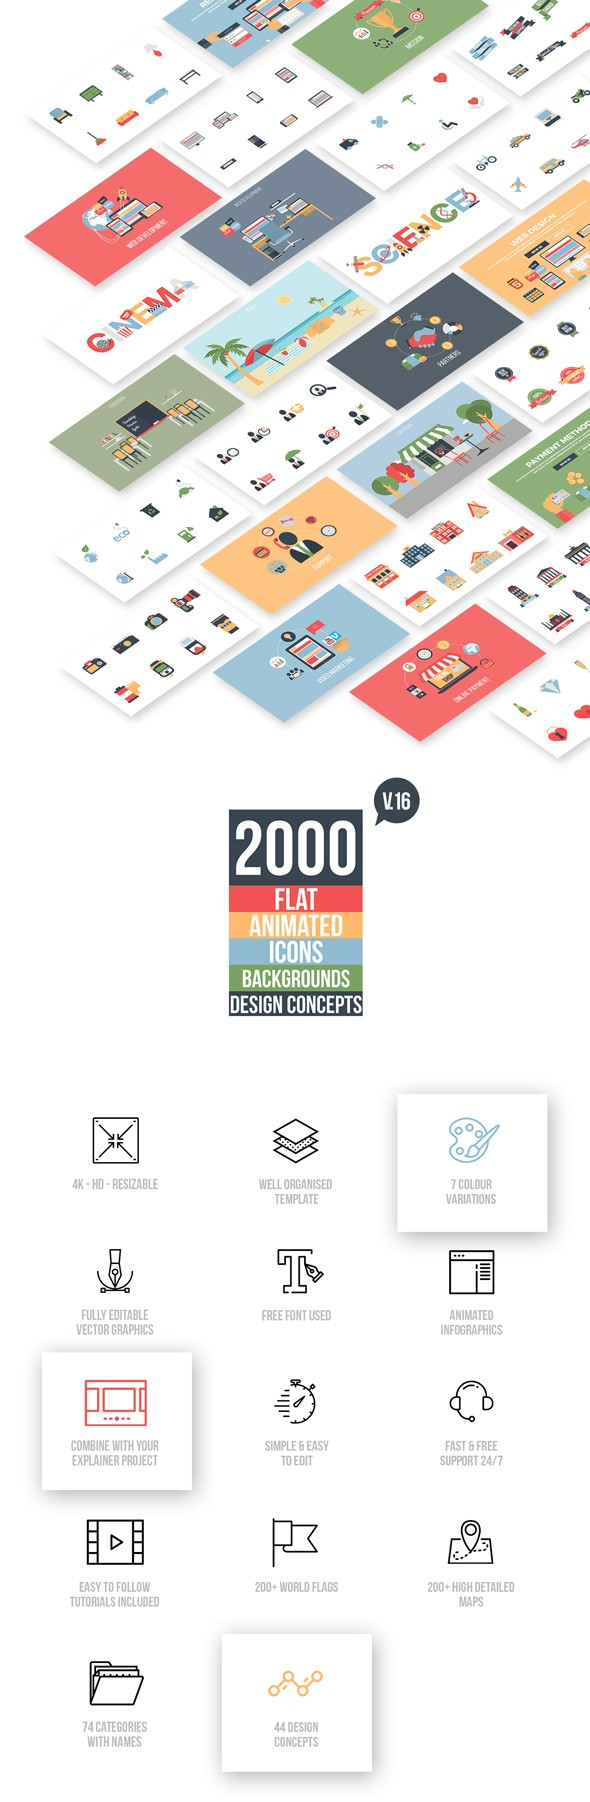 Videohive Flat Animated Icons Library v16 11453830 [Last Update 29/06/18]